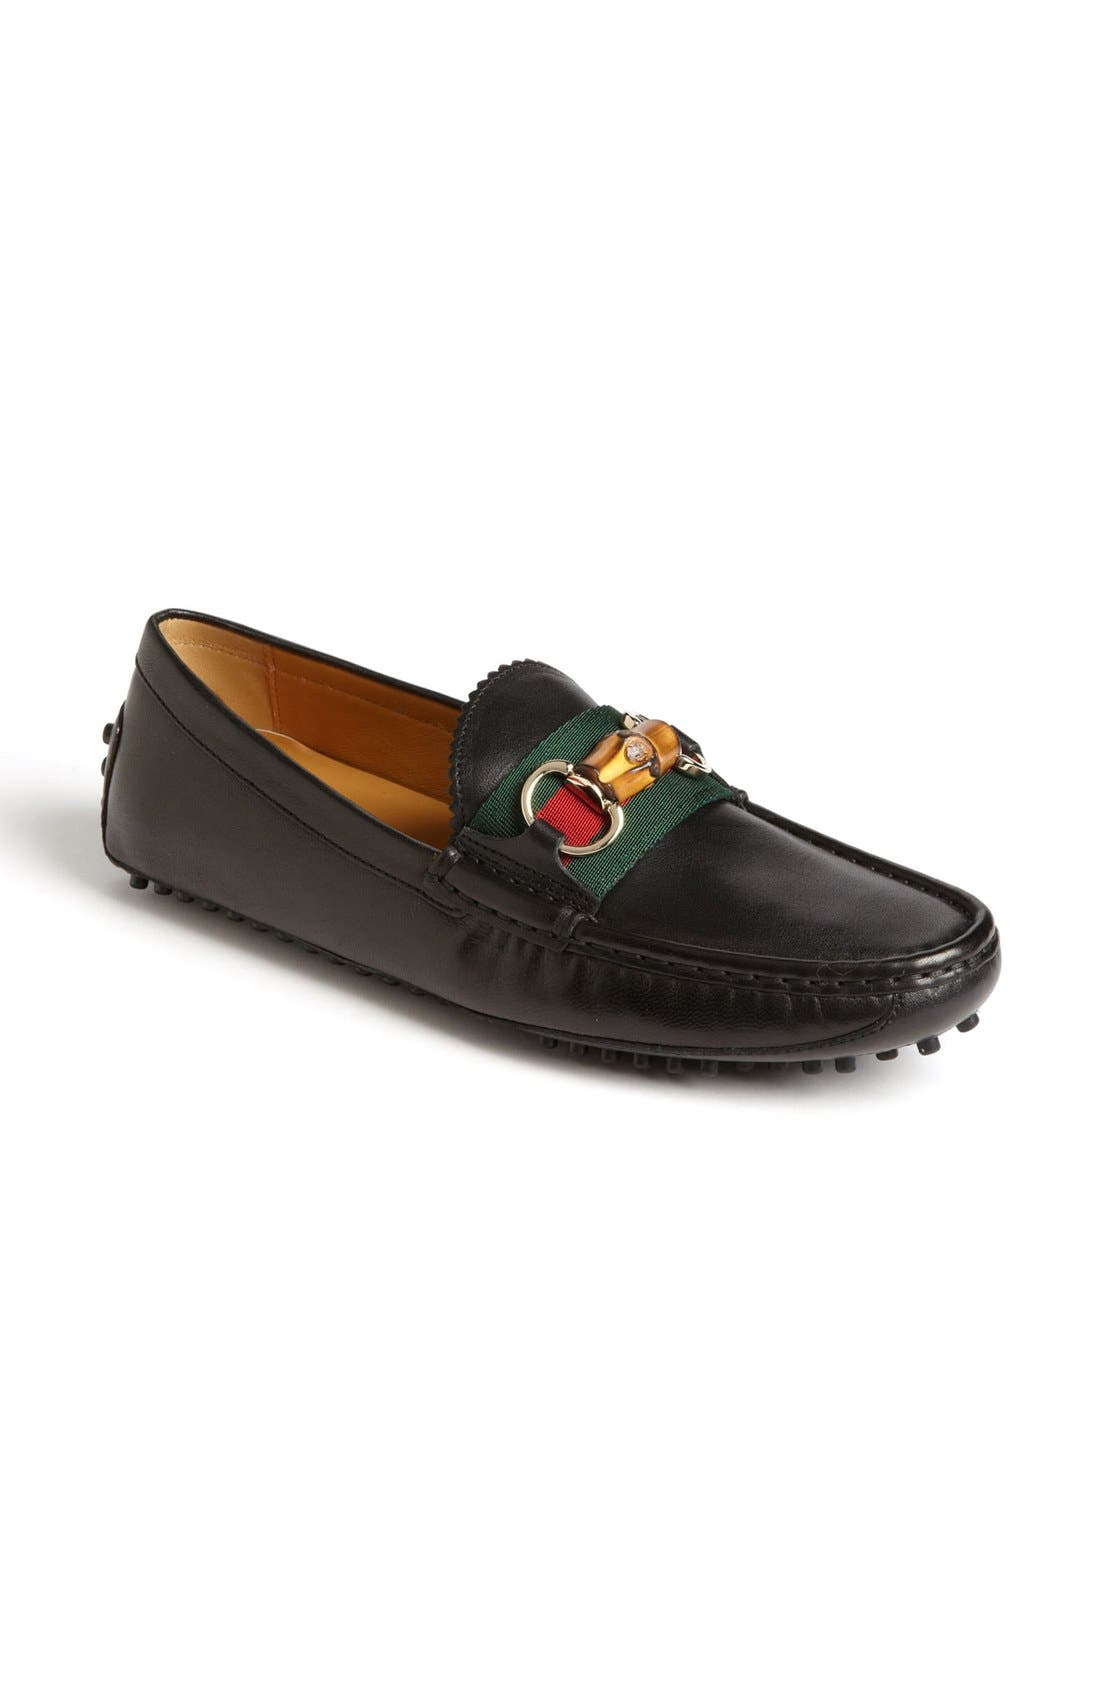 Main Image - Gucci 'Damo' Driving Loafer